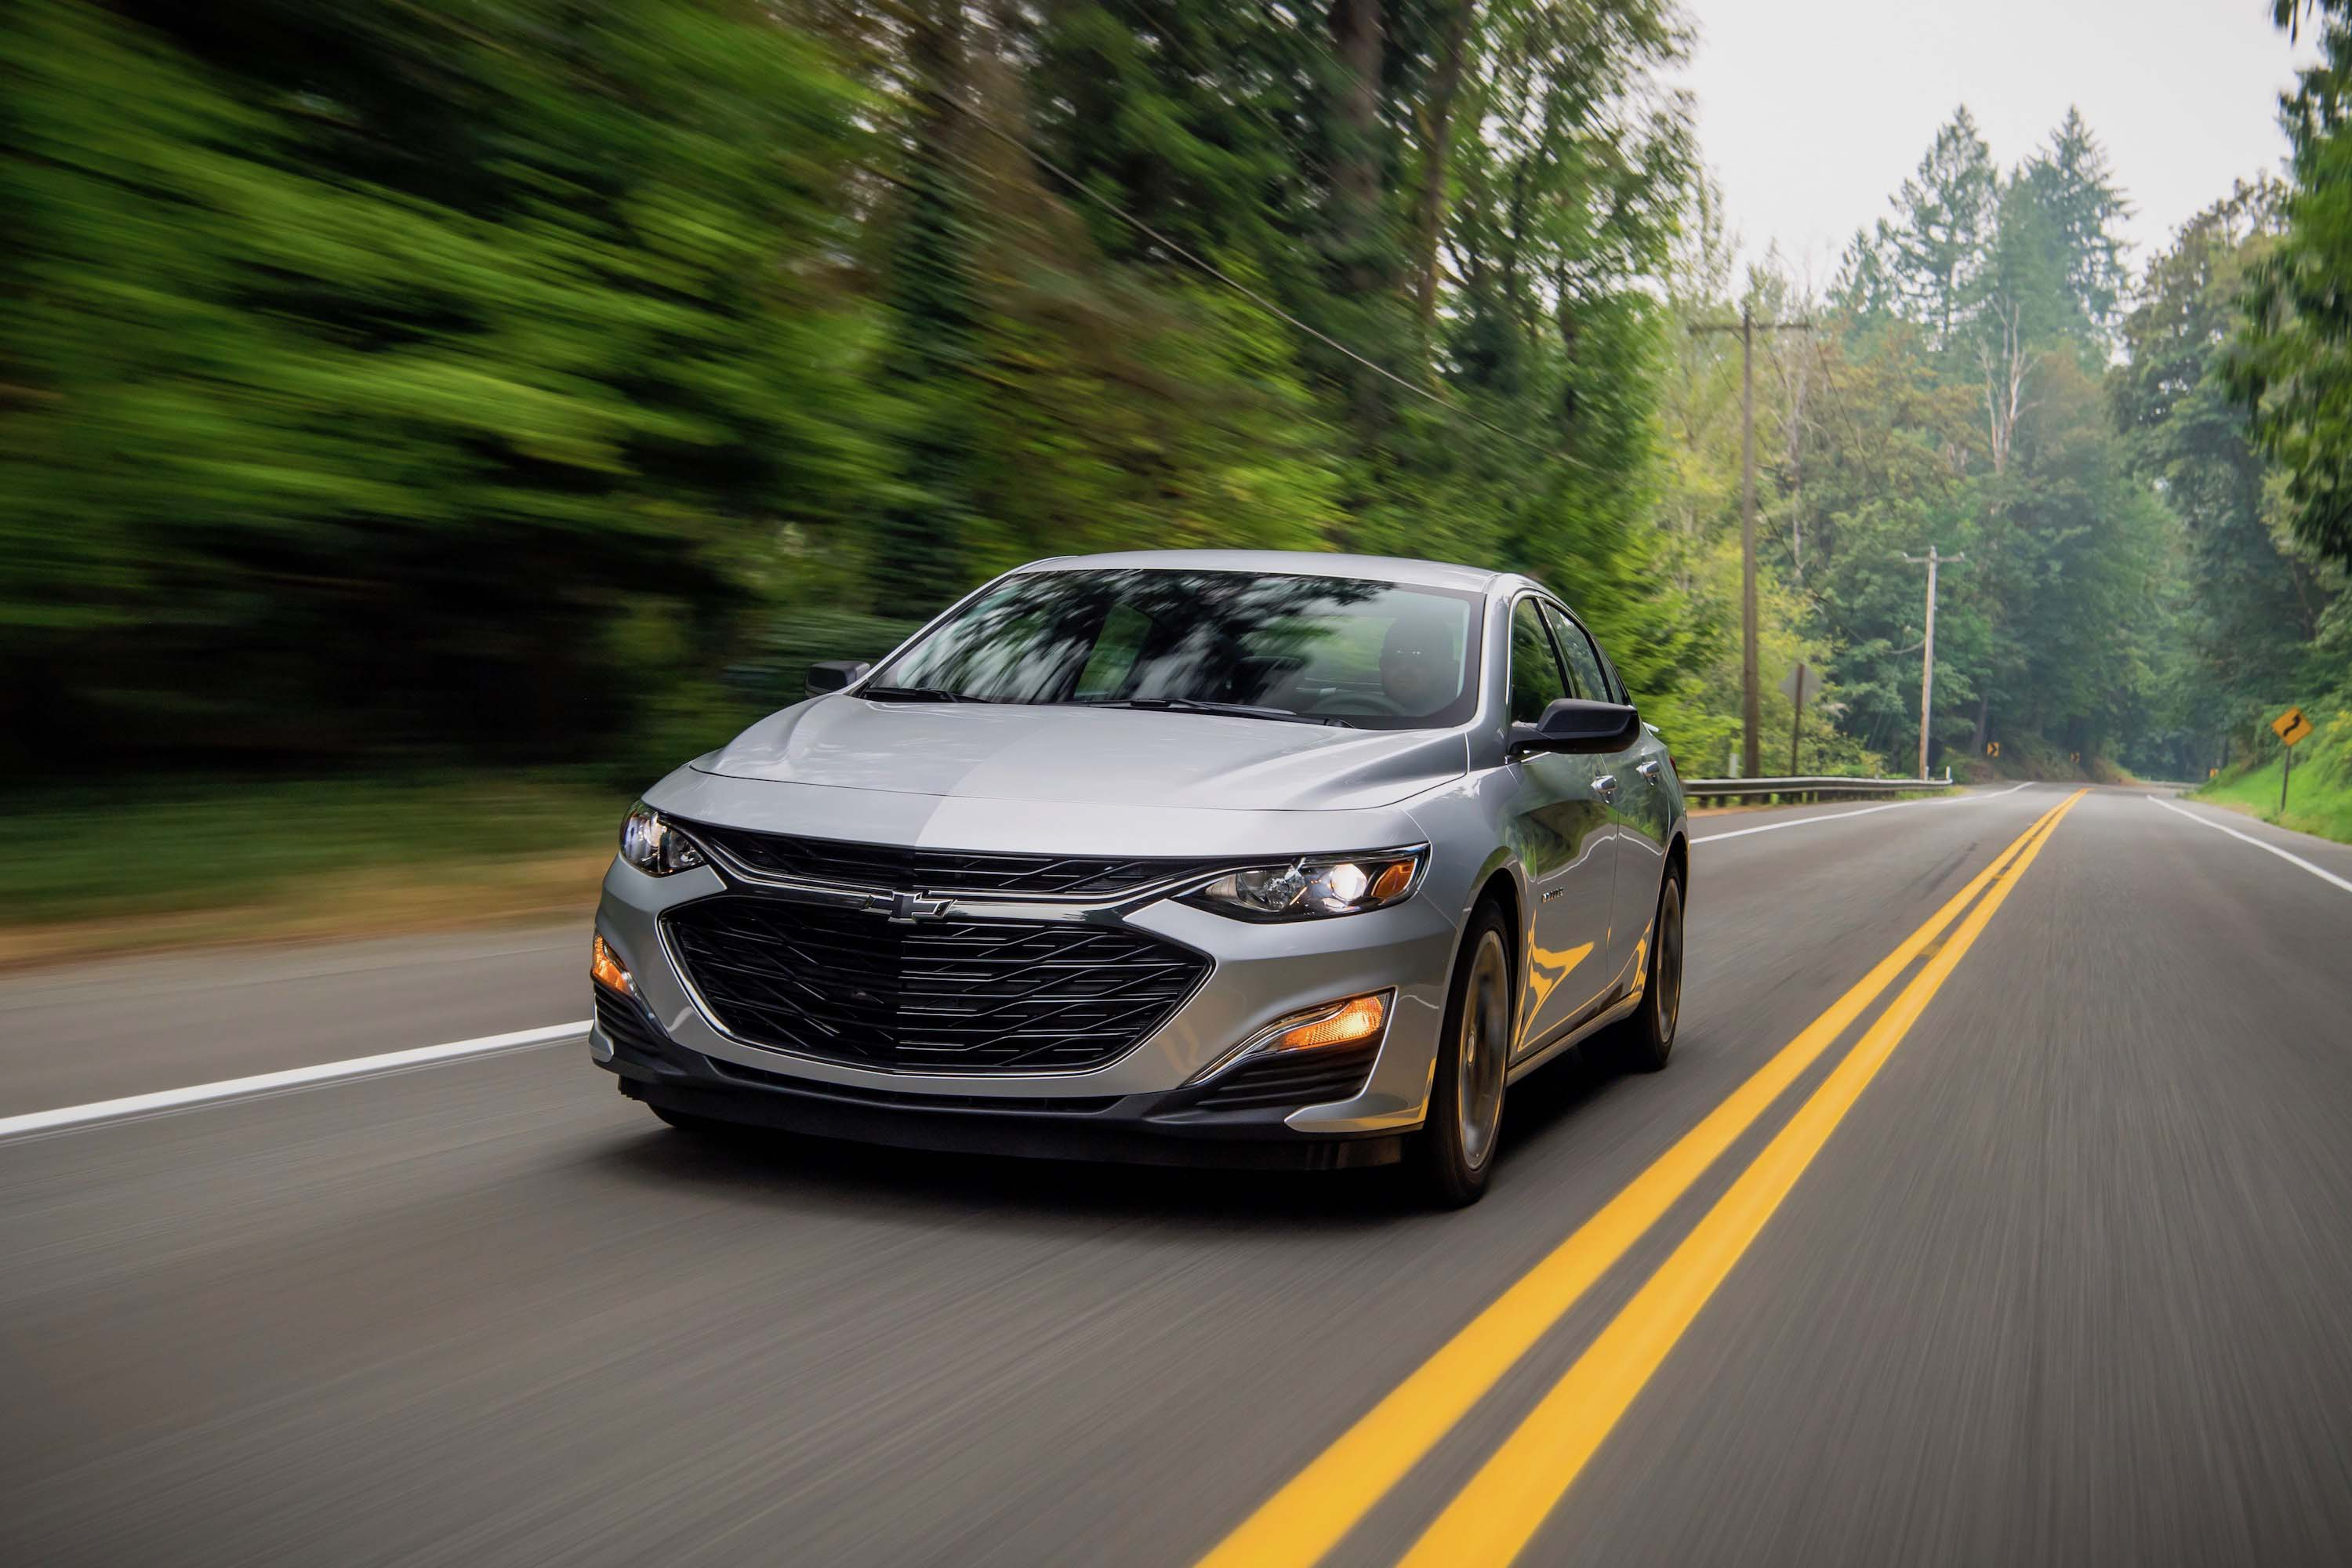 2019 Chevrolet Malibu (Chevy) Review, Ratings, Specs, Prices, and